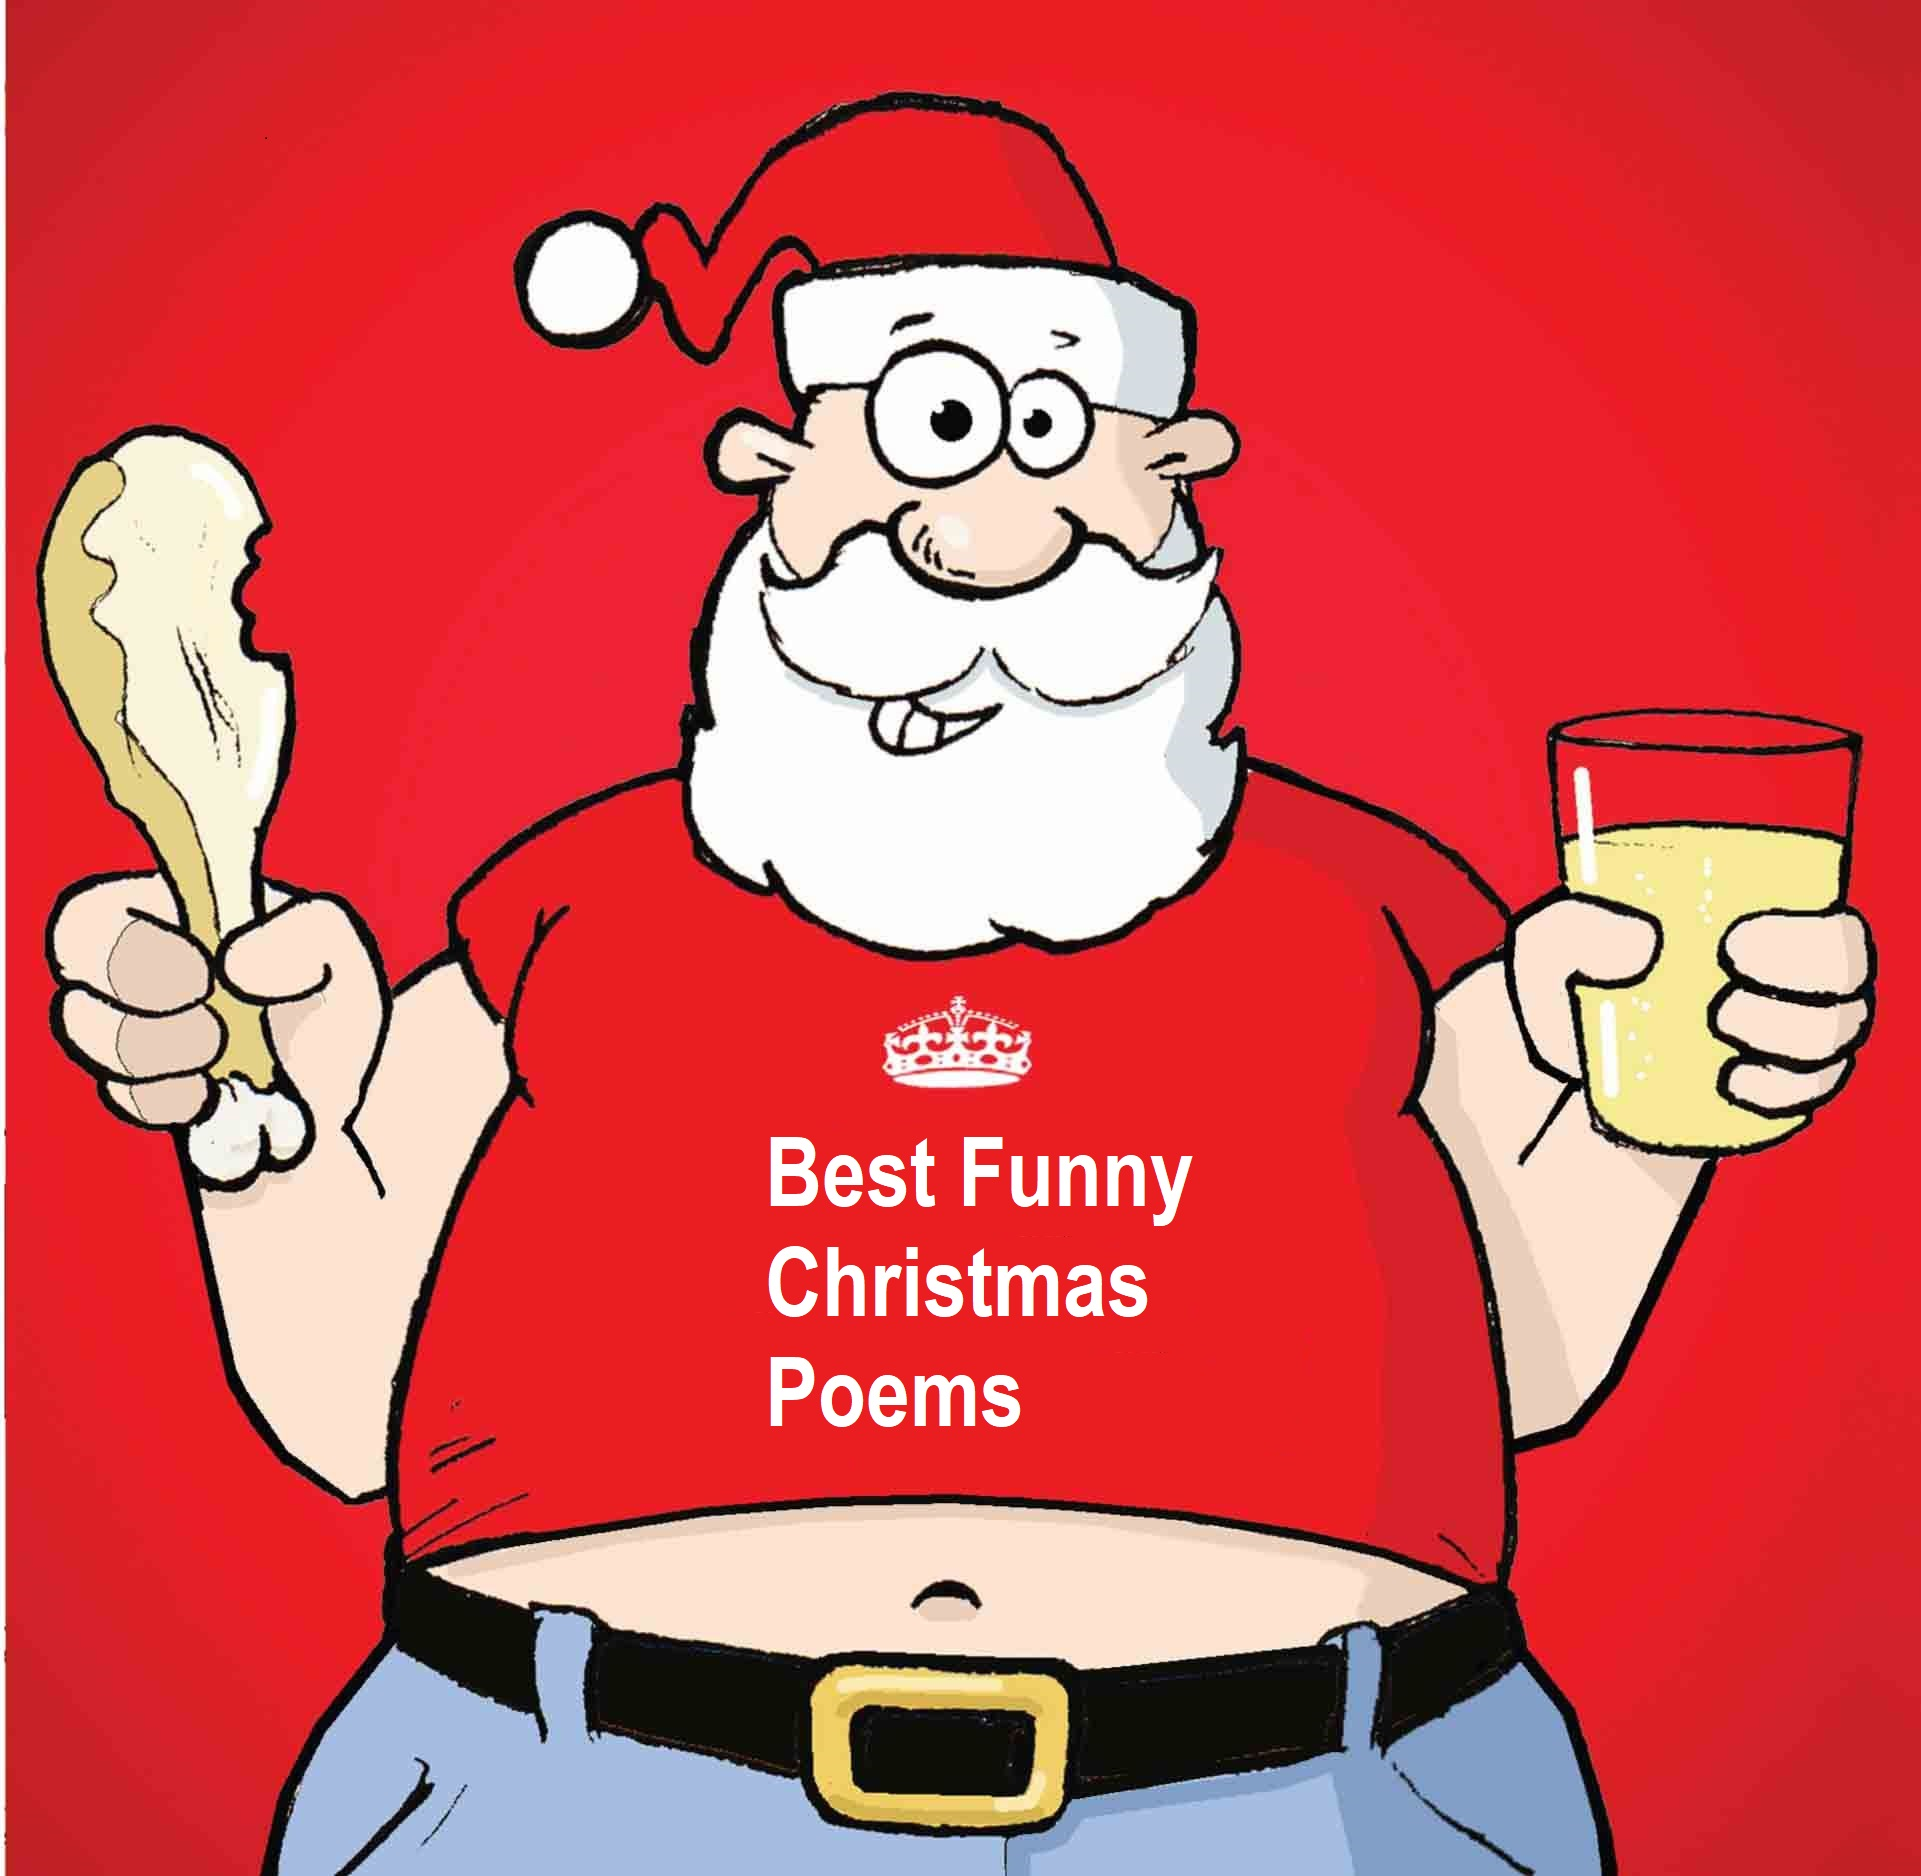 5 most funny christmas poems for kids by anon poemsera - Funny Christmas Poem